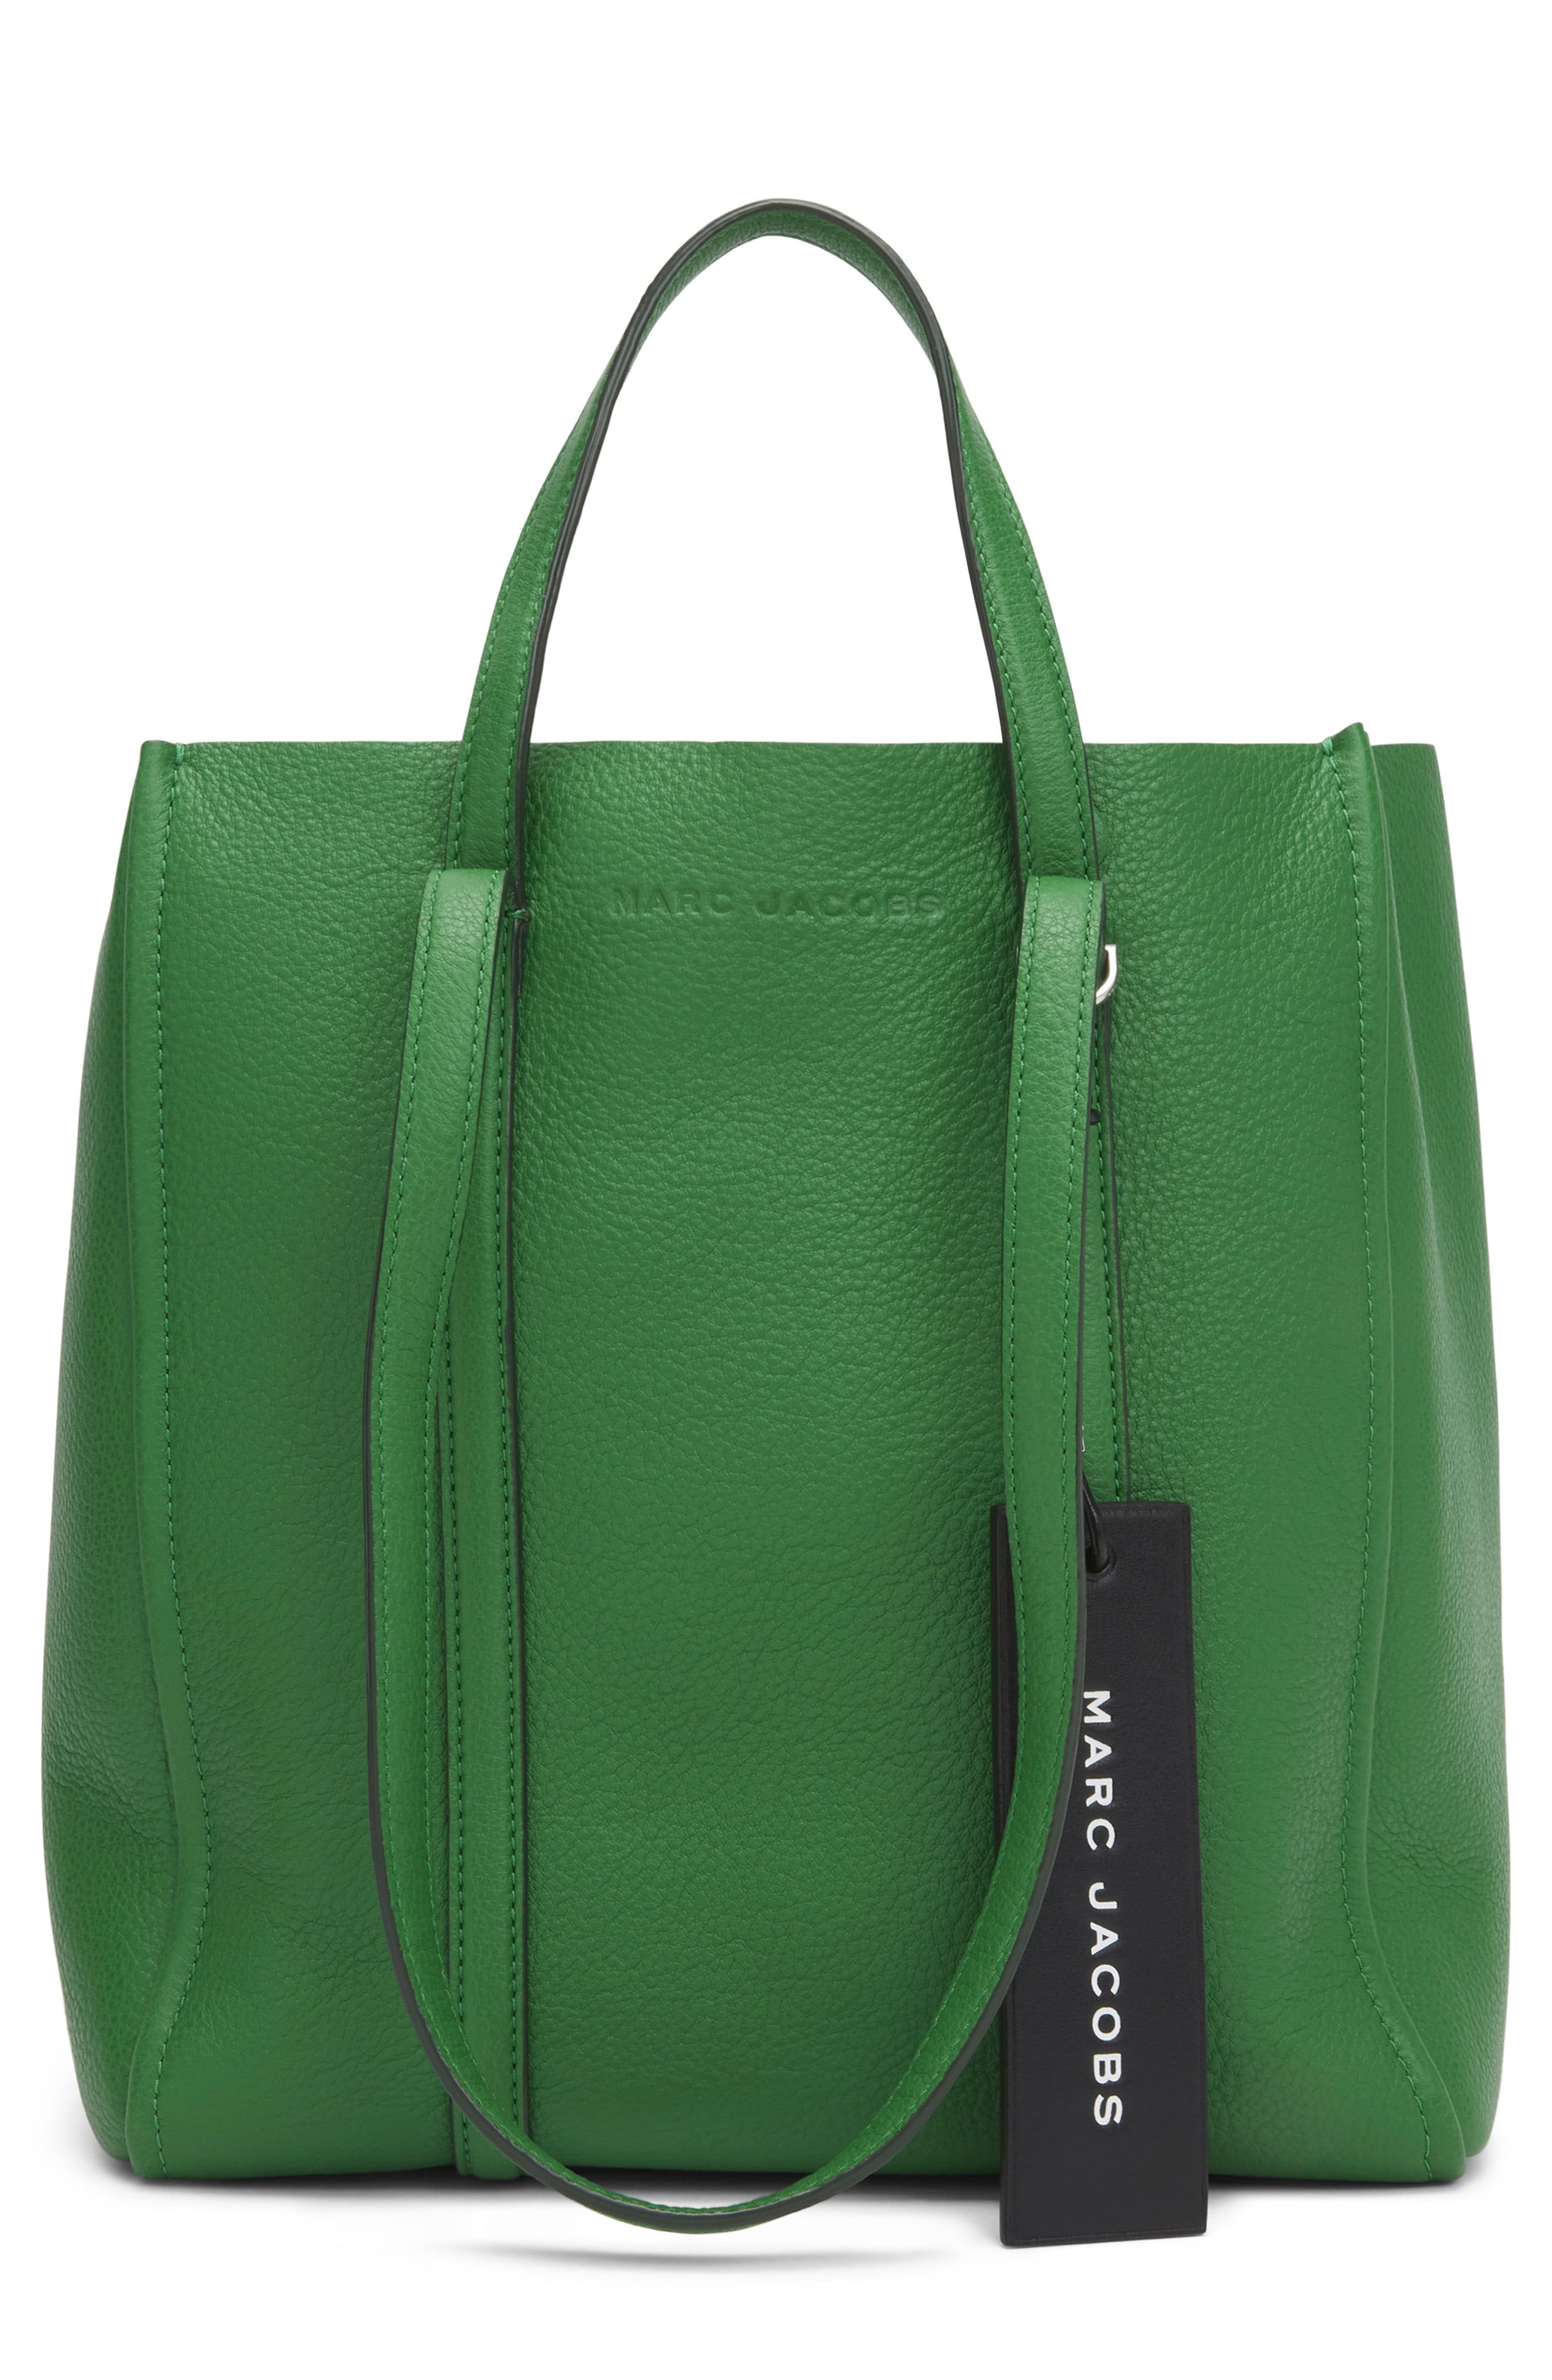 79a36fcb5 Marc Jacobs The Tag 27 Leather Tote in 2019 | Products | Bolsos ...